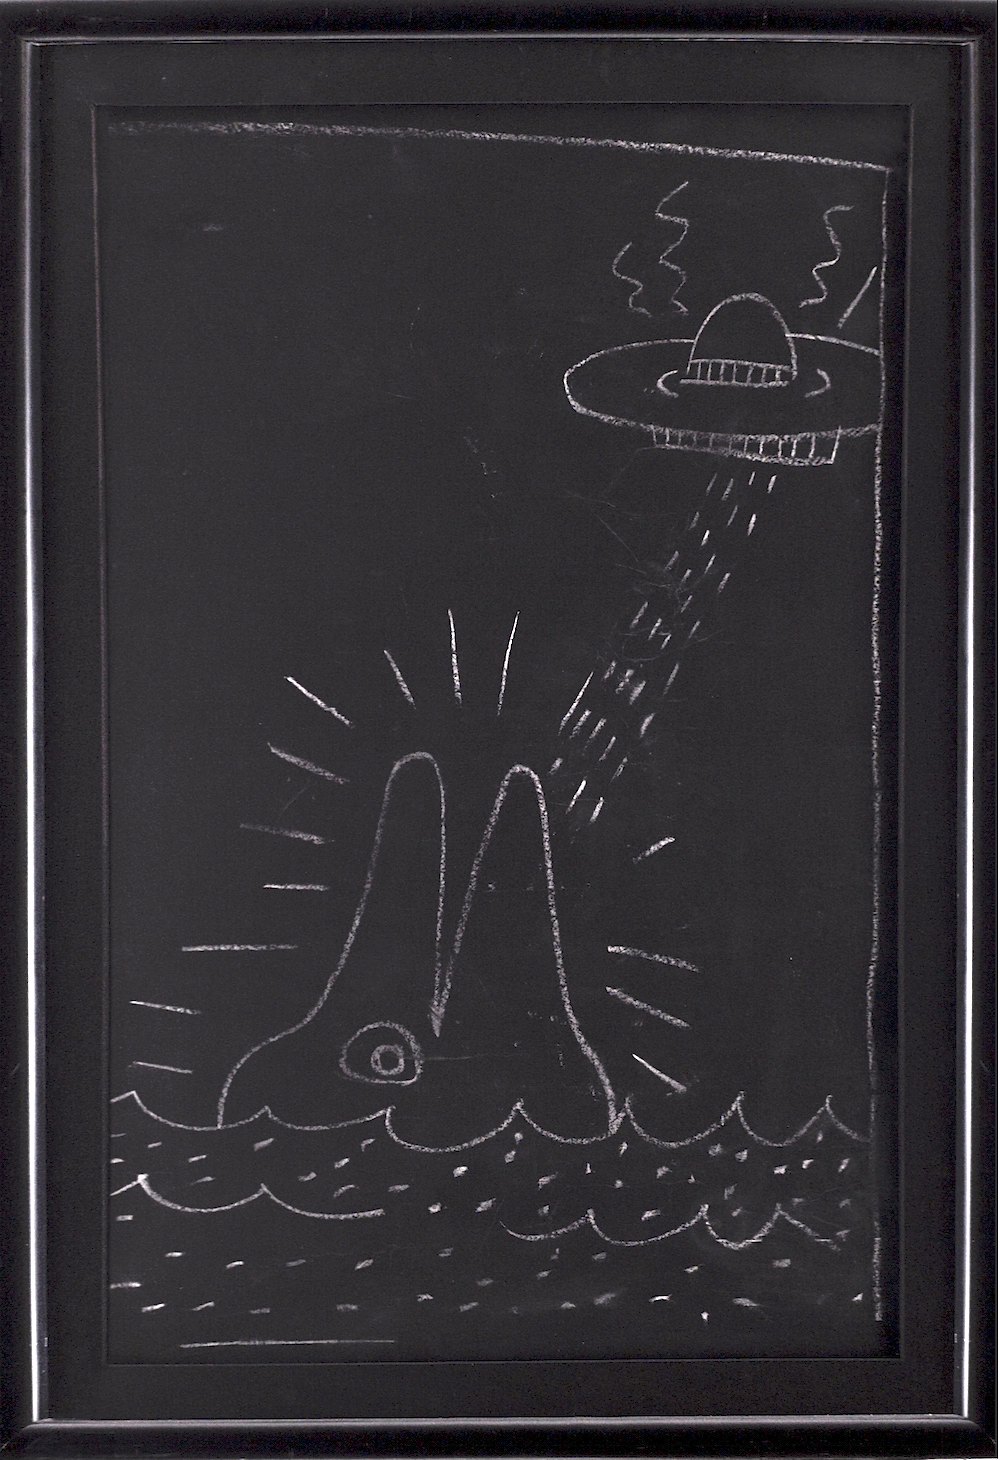 Untitled Whale & Aliens by Keith Haring